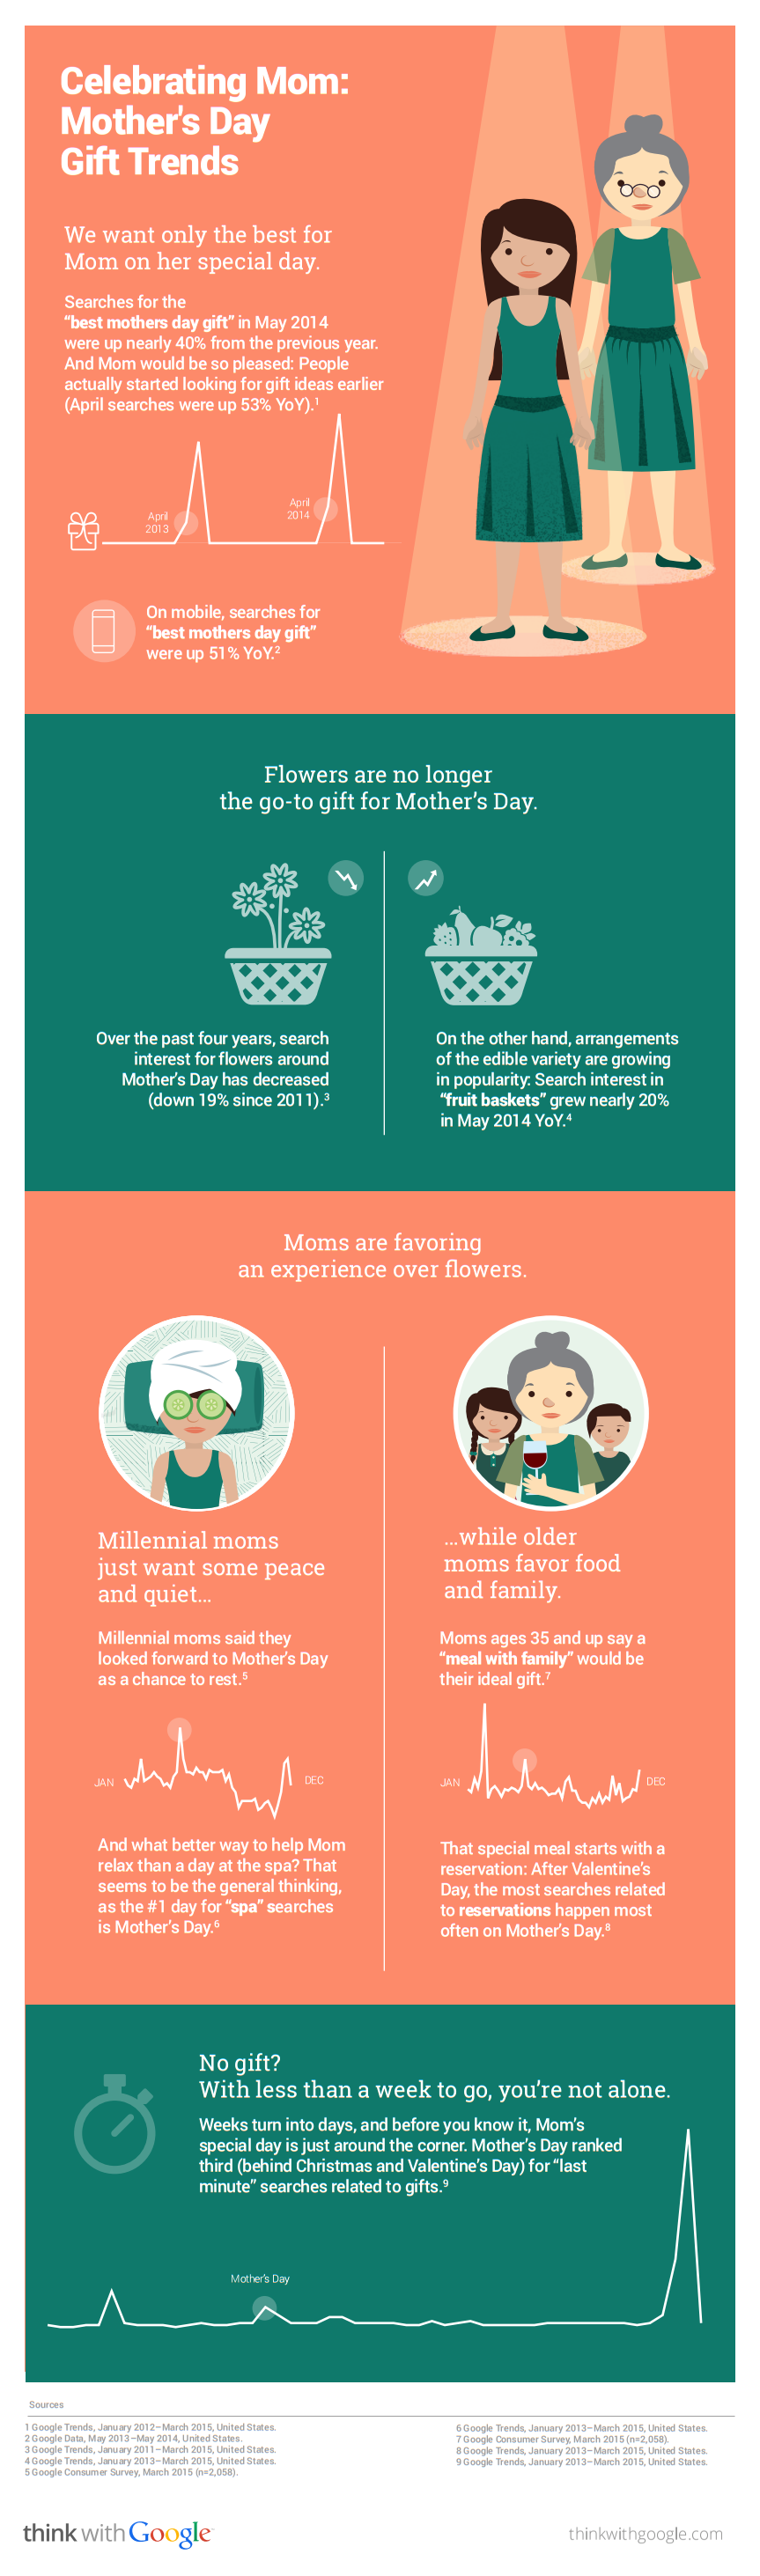 Google Infographic Shares Mother's Day Gift Trends